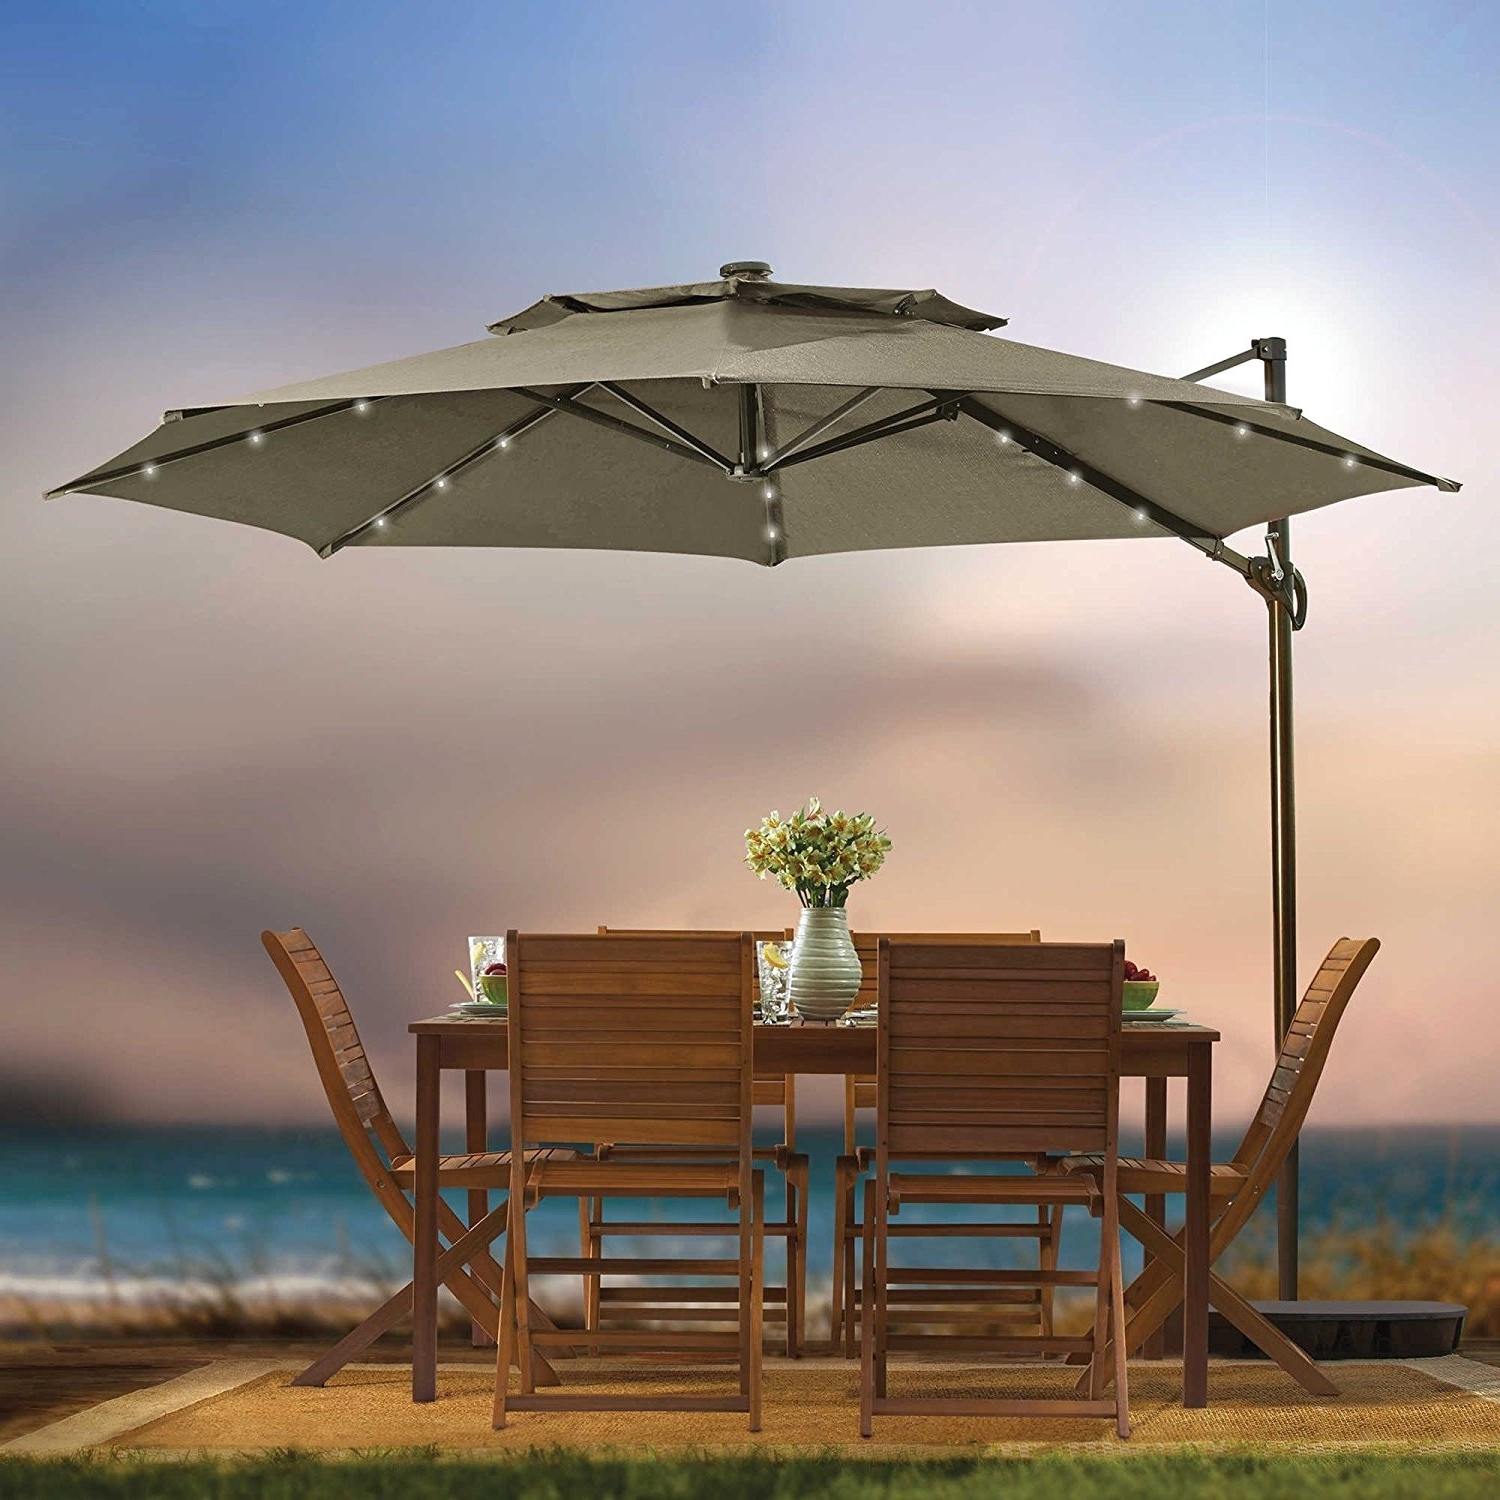 4 6 Foot Patio Umbrellas Awesome Amazon Sundale Outdoor 9 Feet Steel Pertaining To Most Popular Unusual Patio Umbrellas (View 1 of 20)